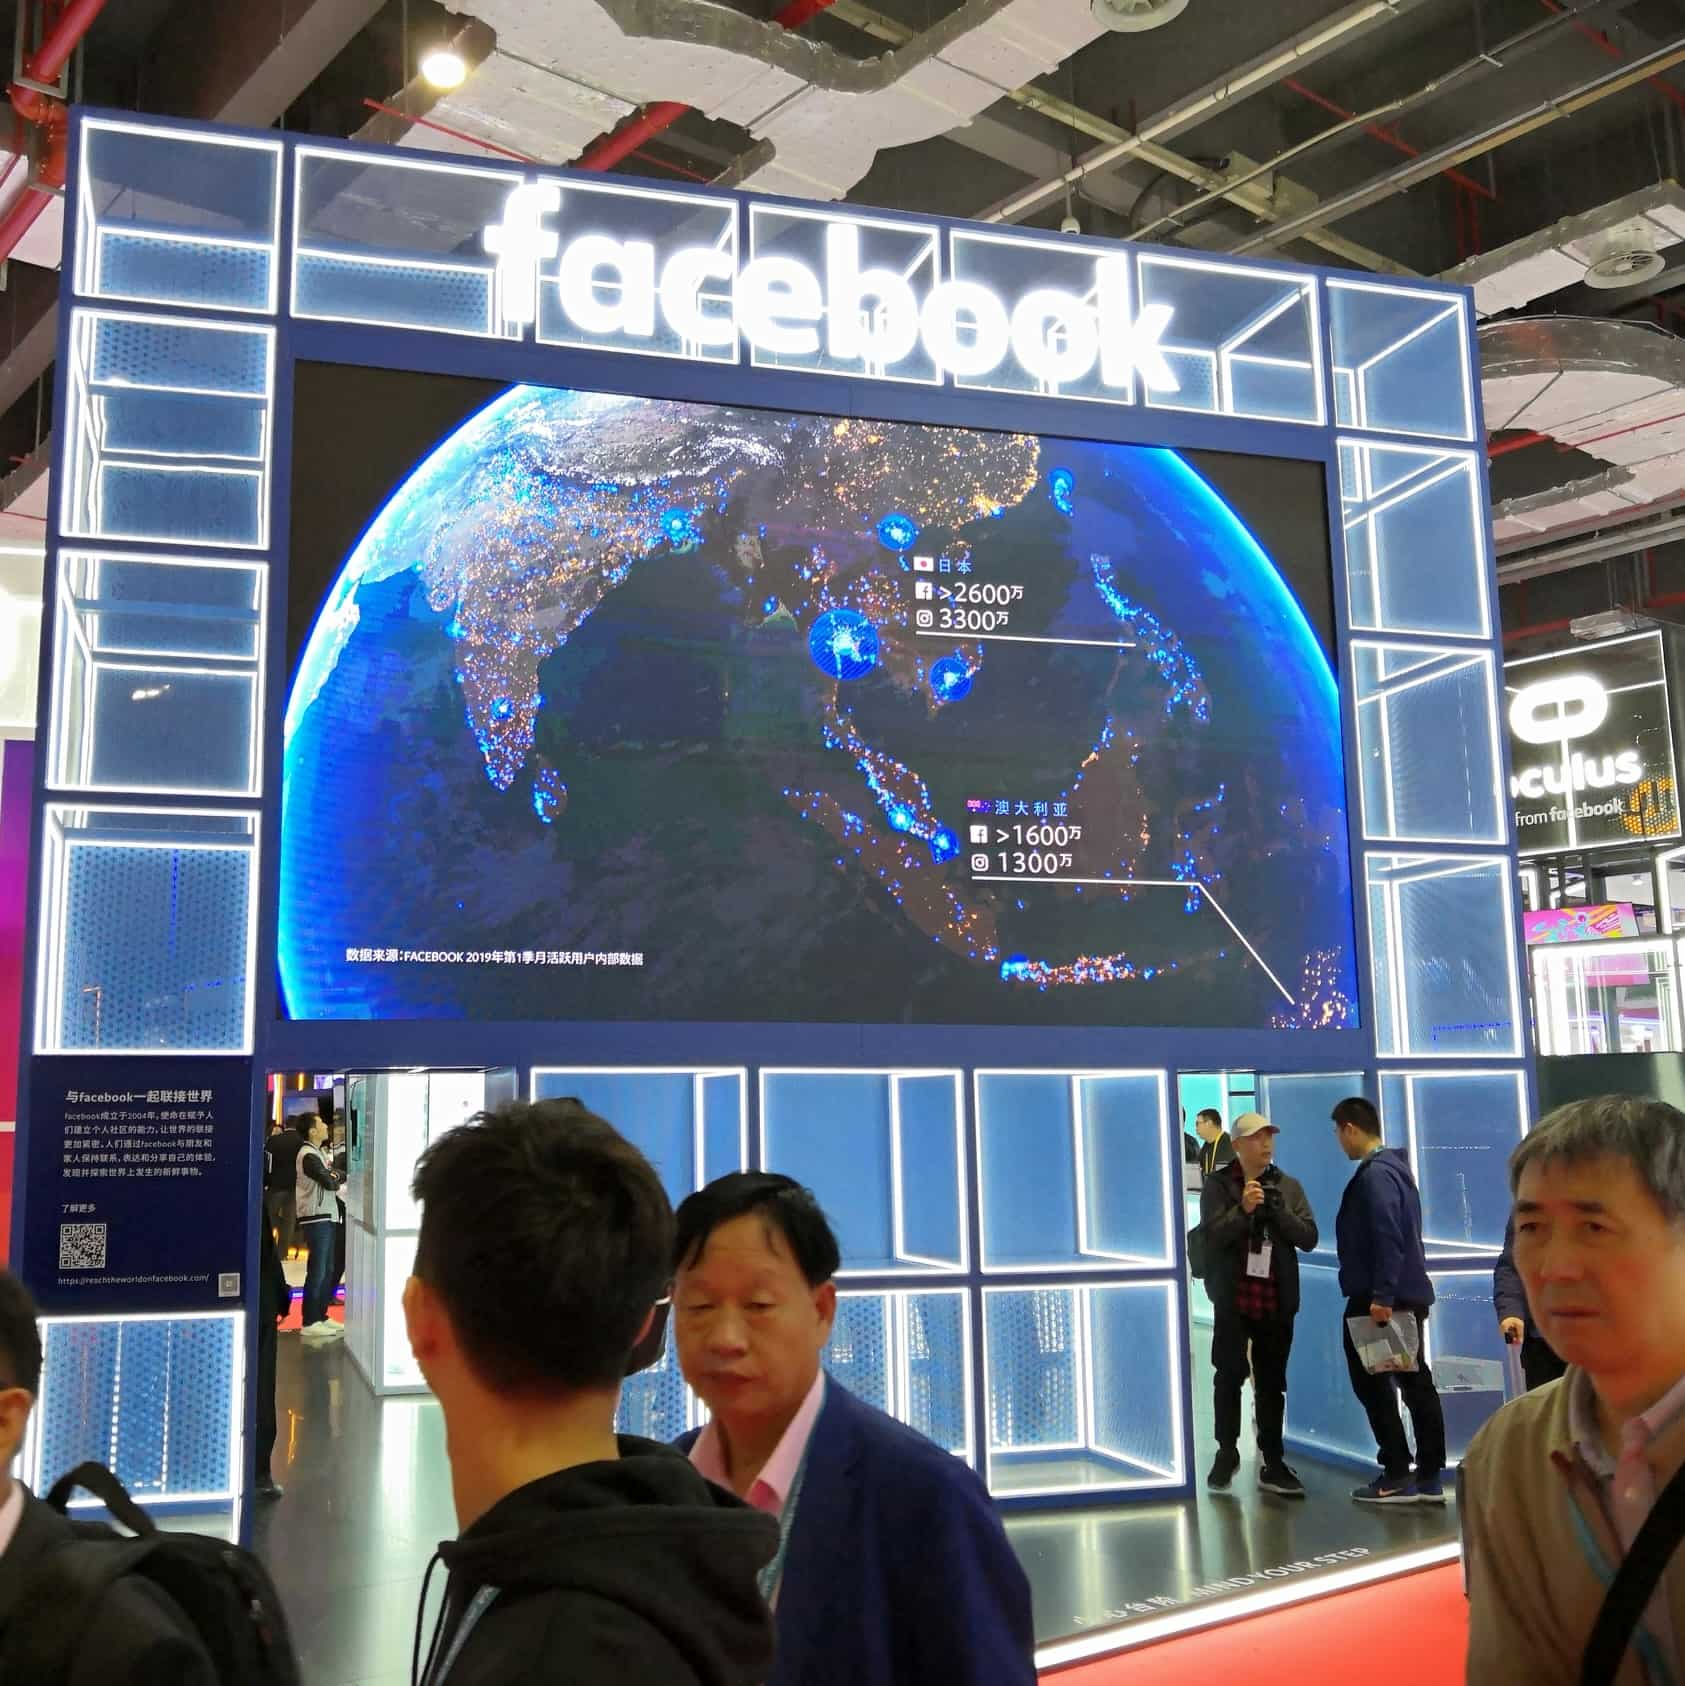 Helosuo_FB_China International Export Expo